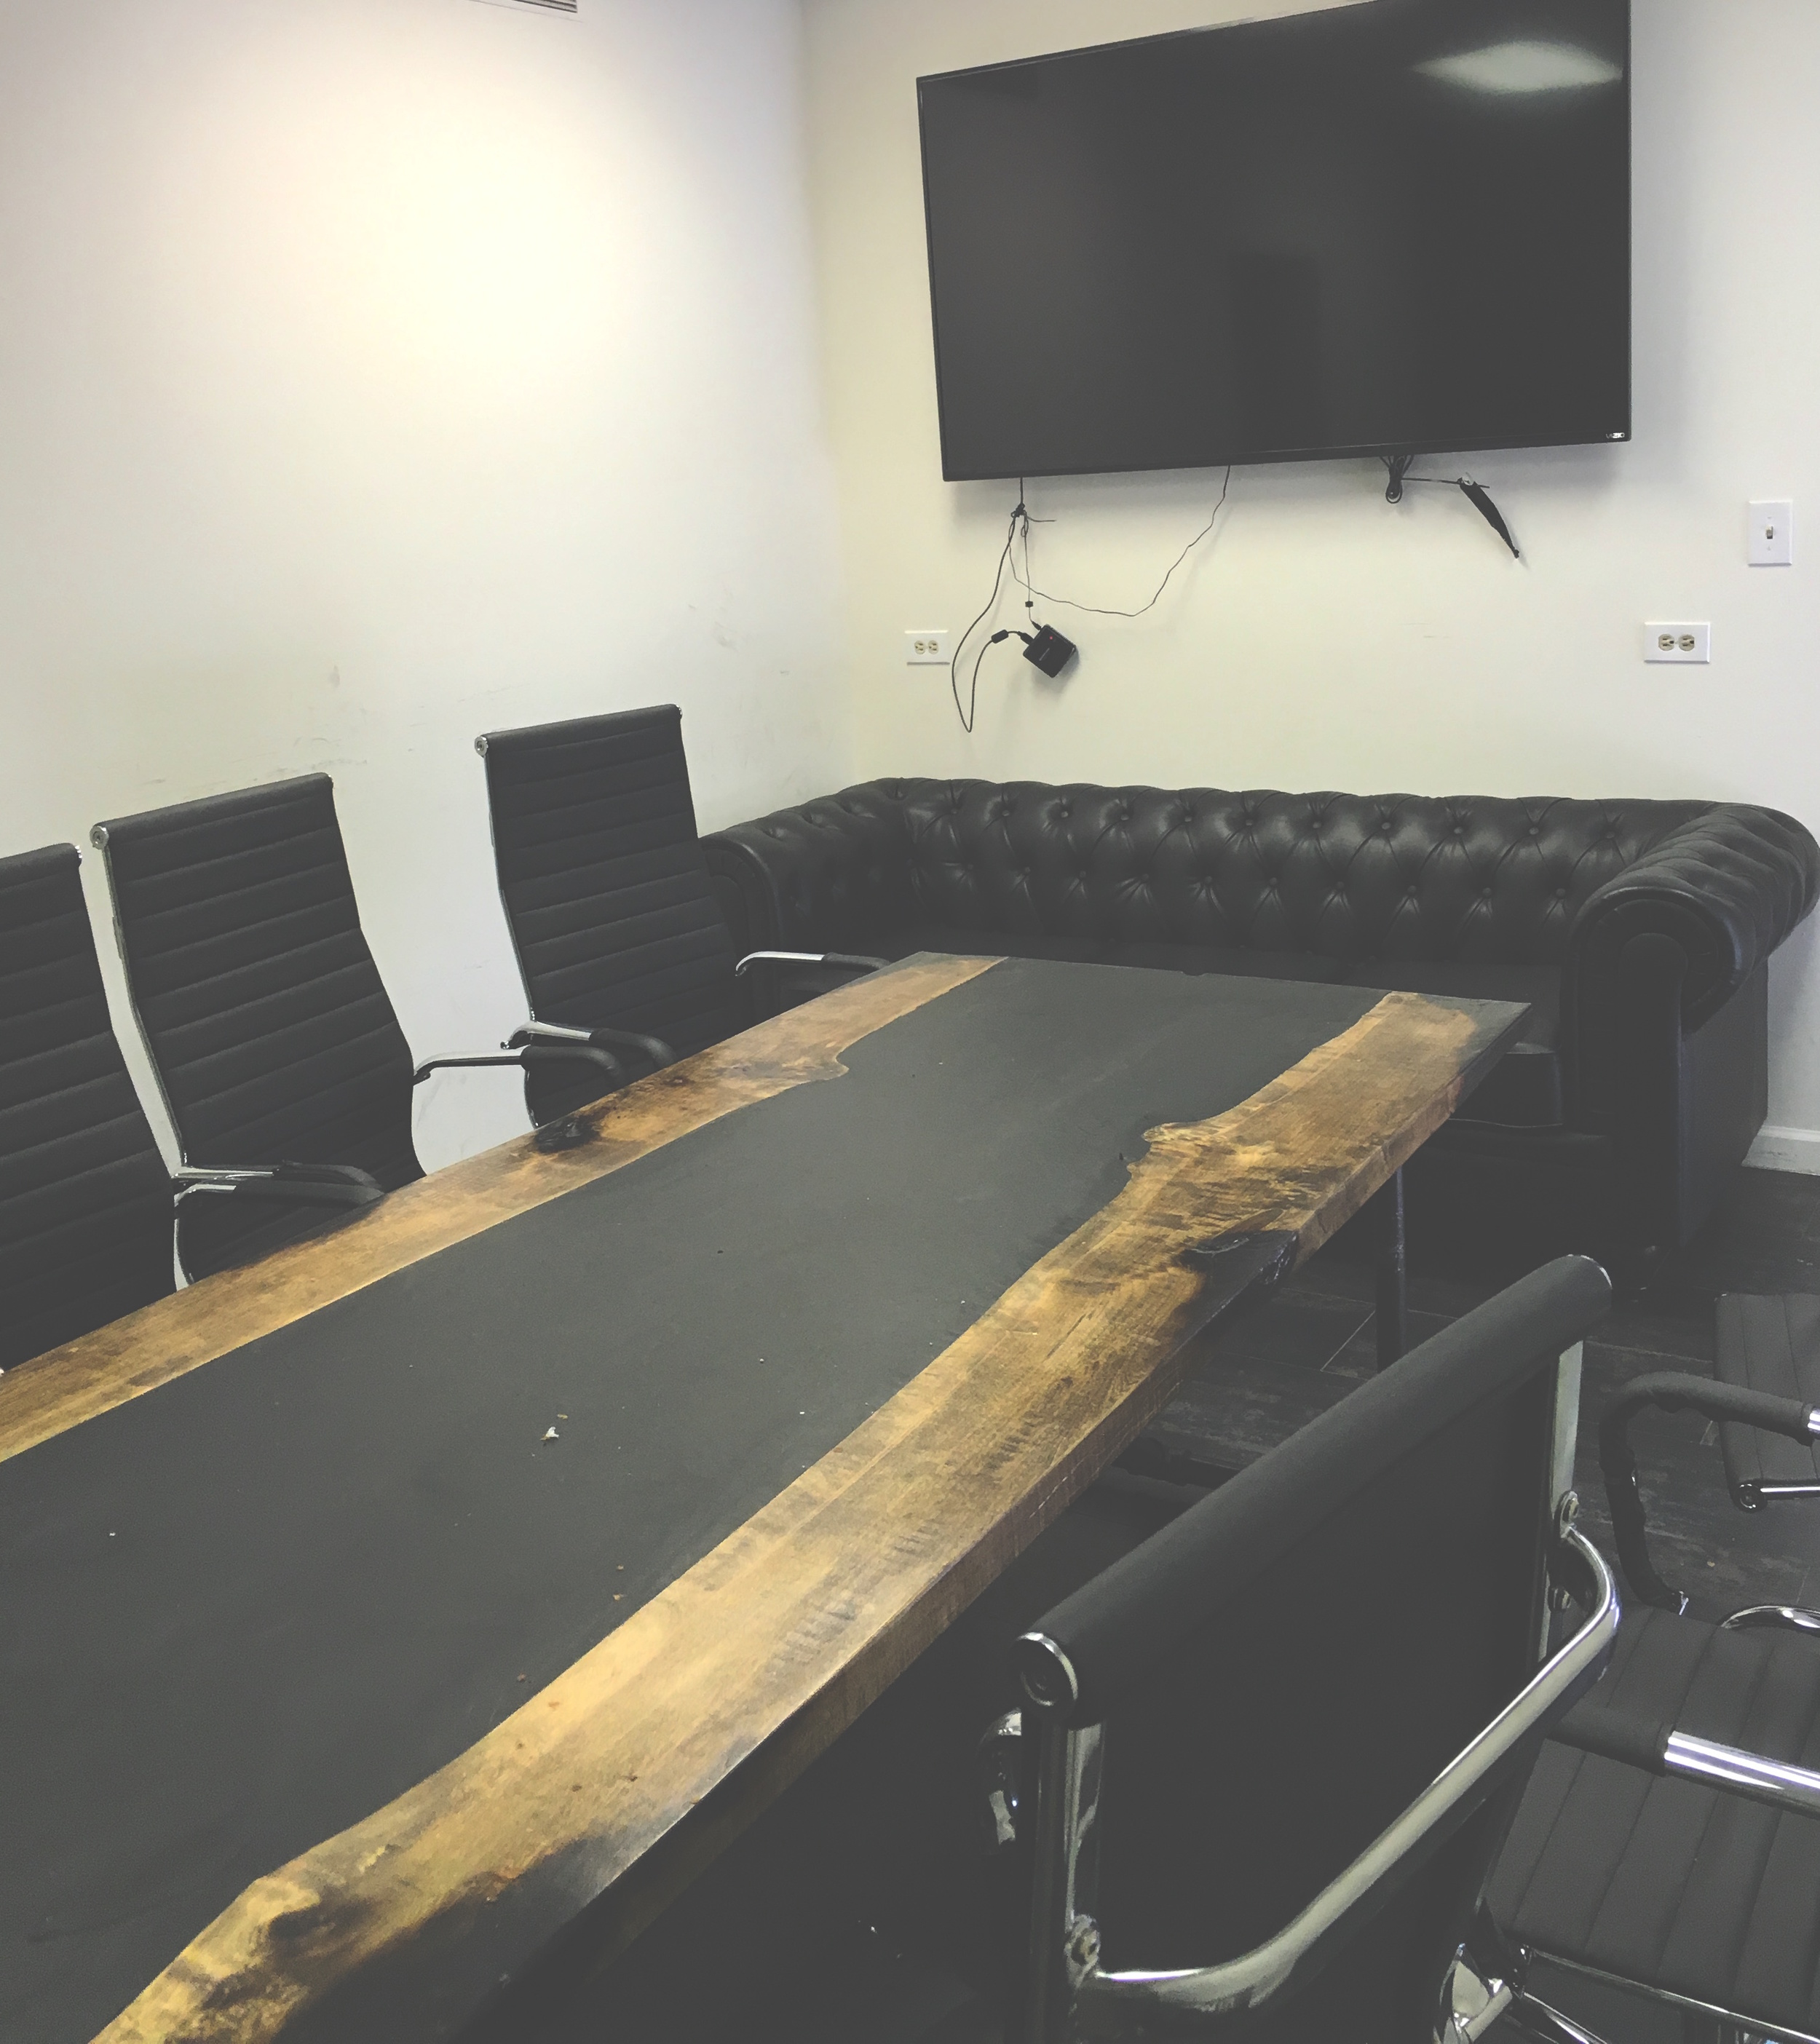 Fully Equipped with TV Monitor and Conference Chairs